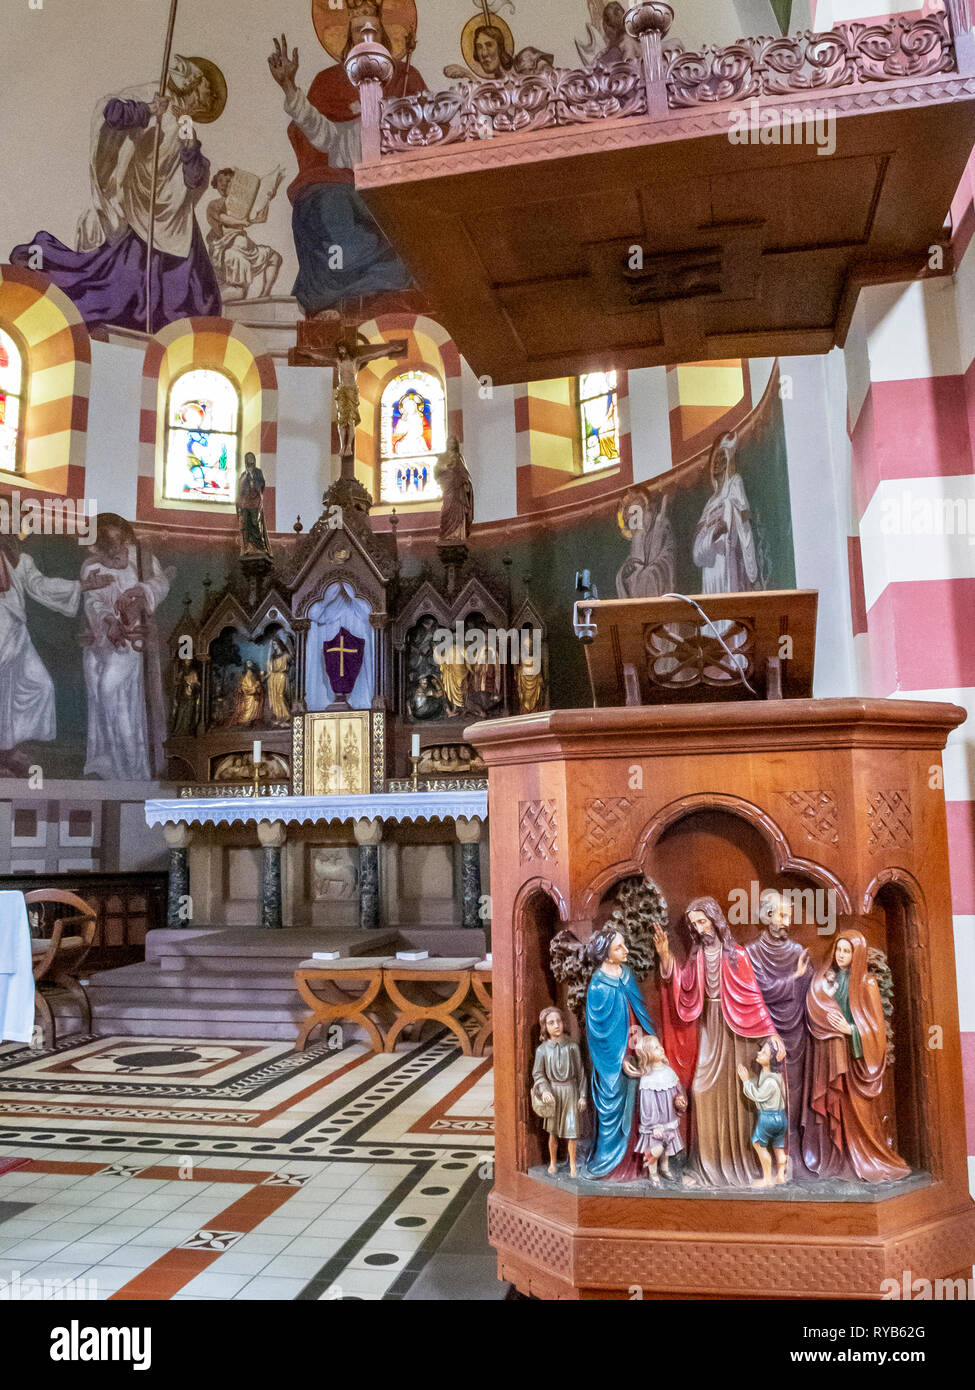 BIERSDORF AM SEE, GERMANY - MARCH 22, 2015: Close picture of the Neo-Romanesque pulpit of St. Martin's Church, the choir with the high altar in the ba Stock Photo